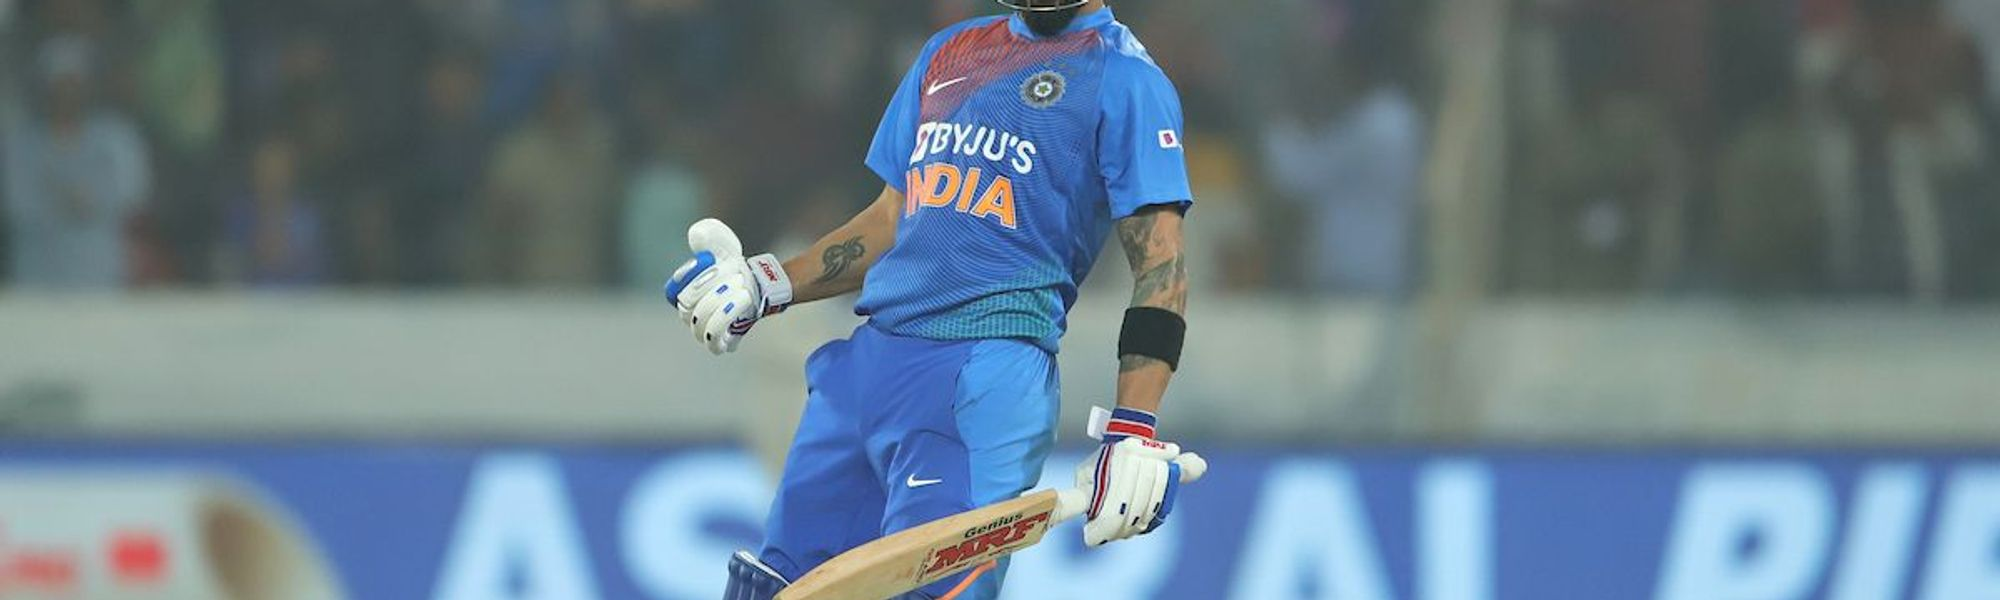 Virat Kohli S 94 Leads India To Stunning Victory